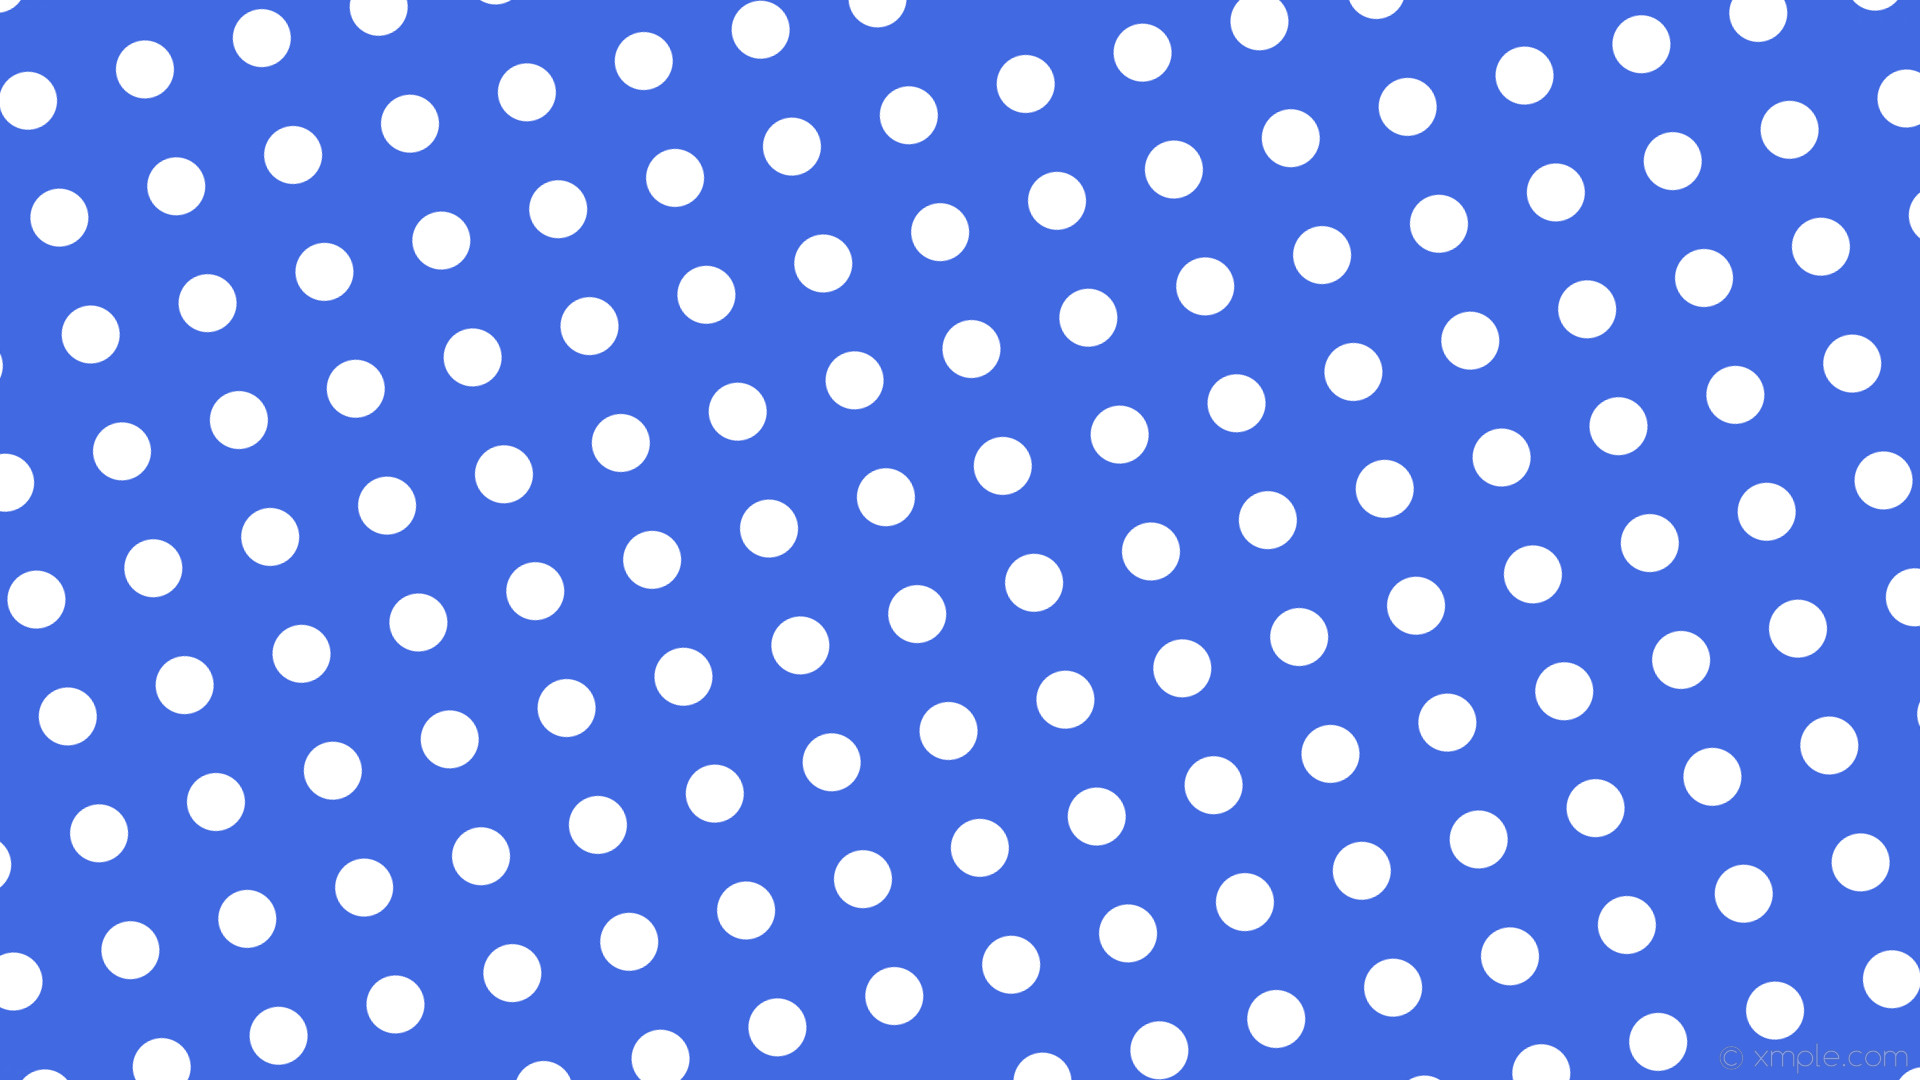 wallpaper blue polka dots white spots royal blue #4169e1 #ffffff 195° 58px  121px